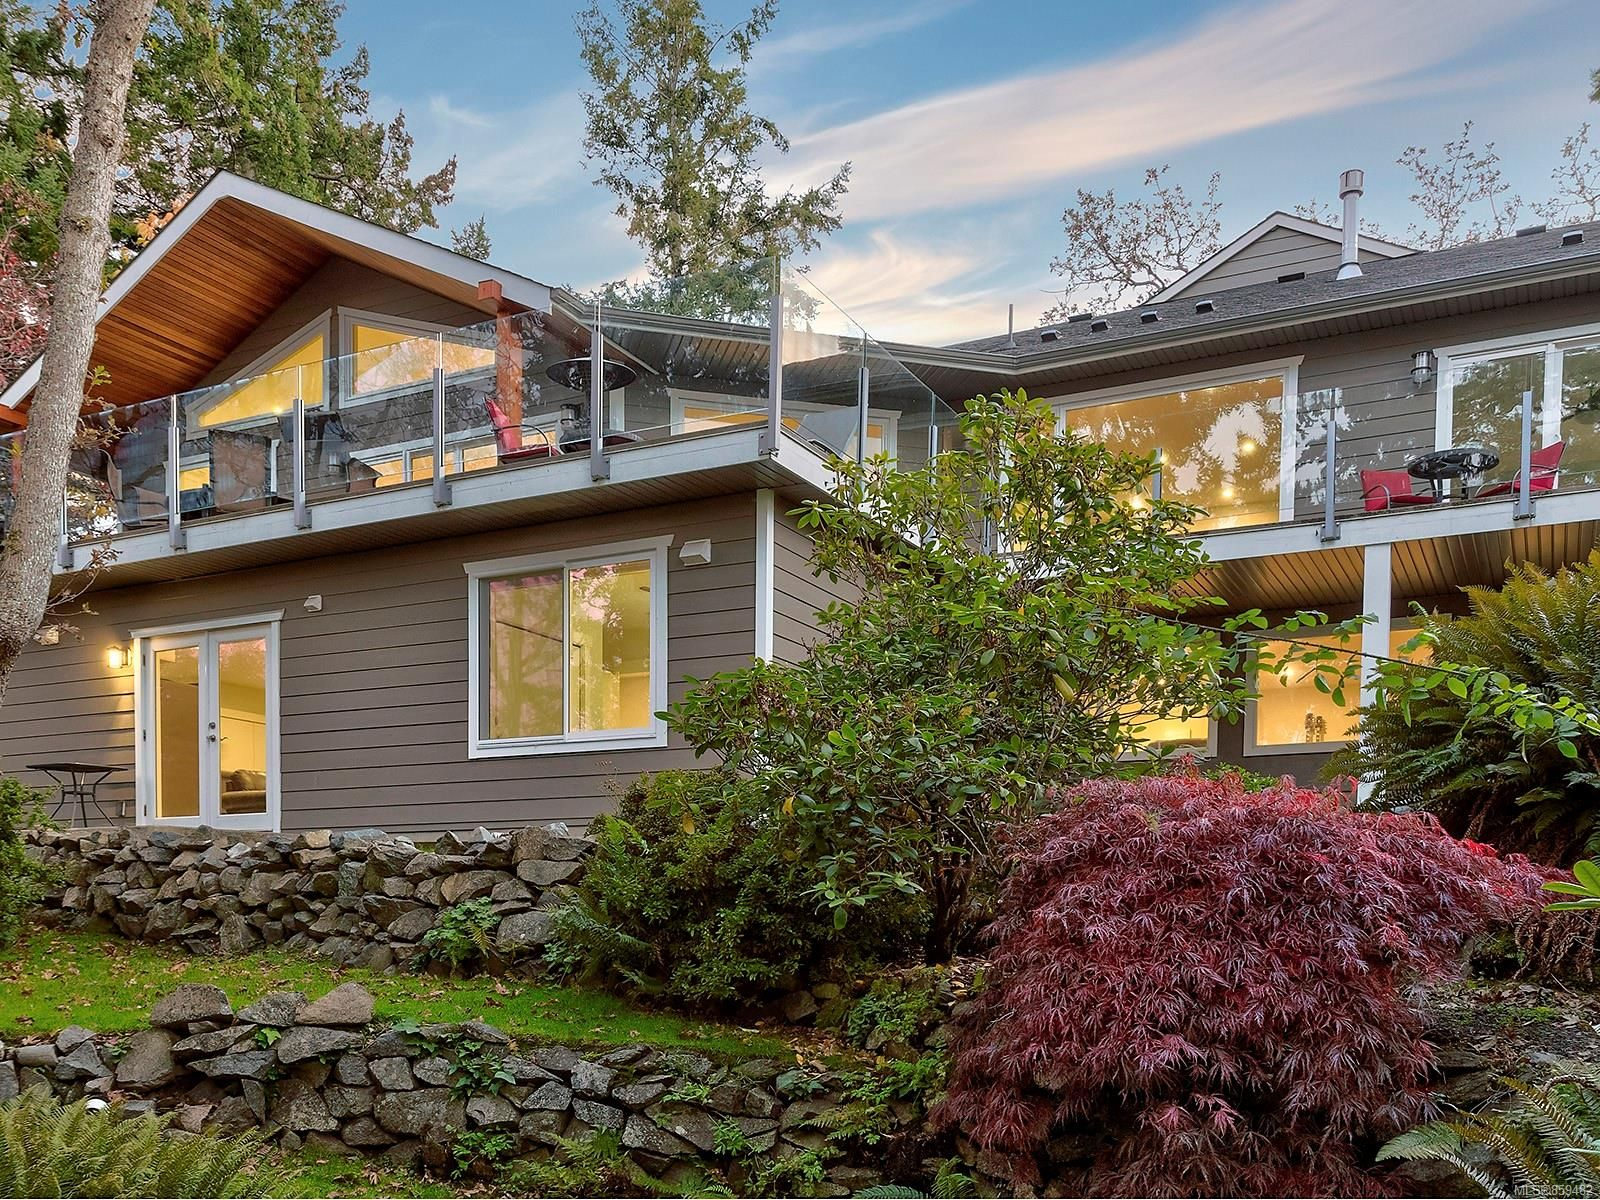 Photo 12: Photos: 4086 Monarch Pl in : SE Arbutus House for sale (Saanich East)  : MLS®# 859482